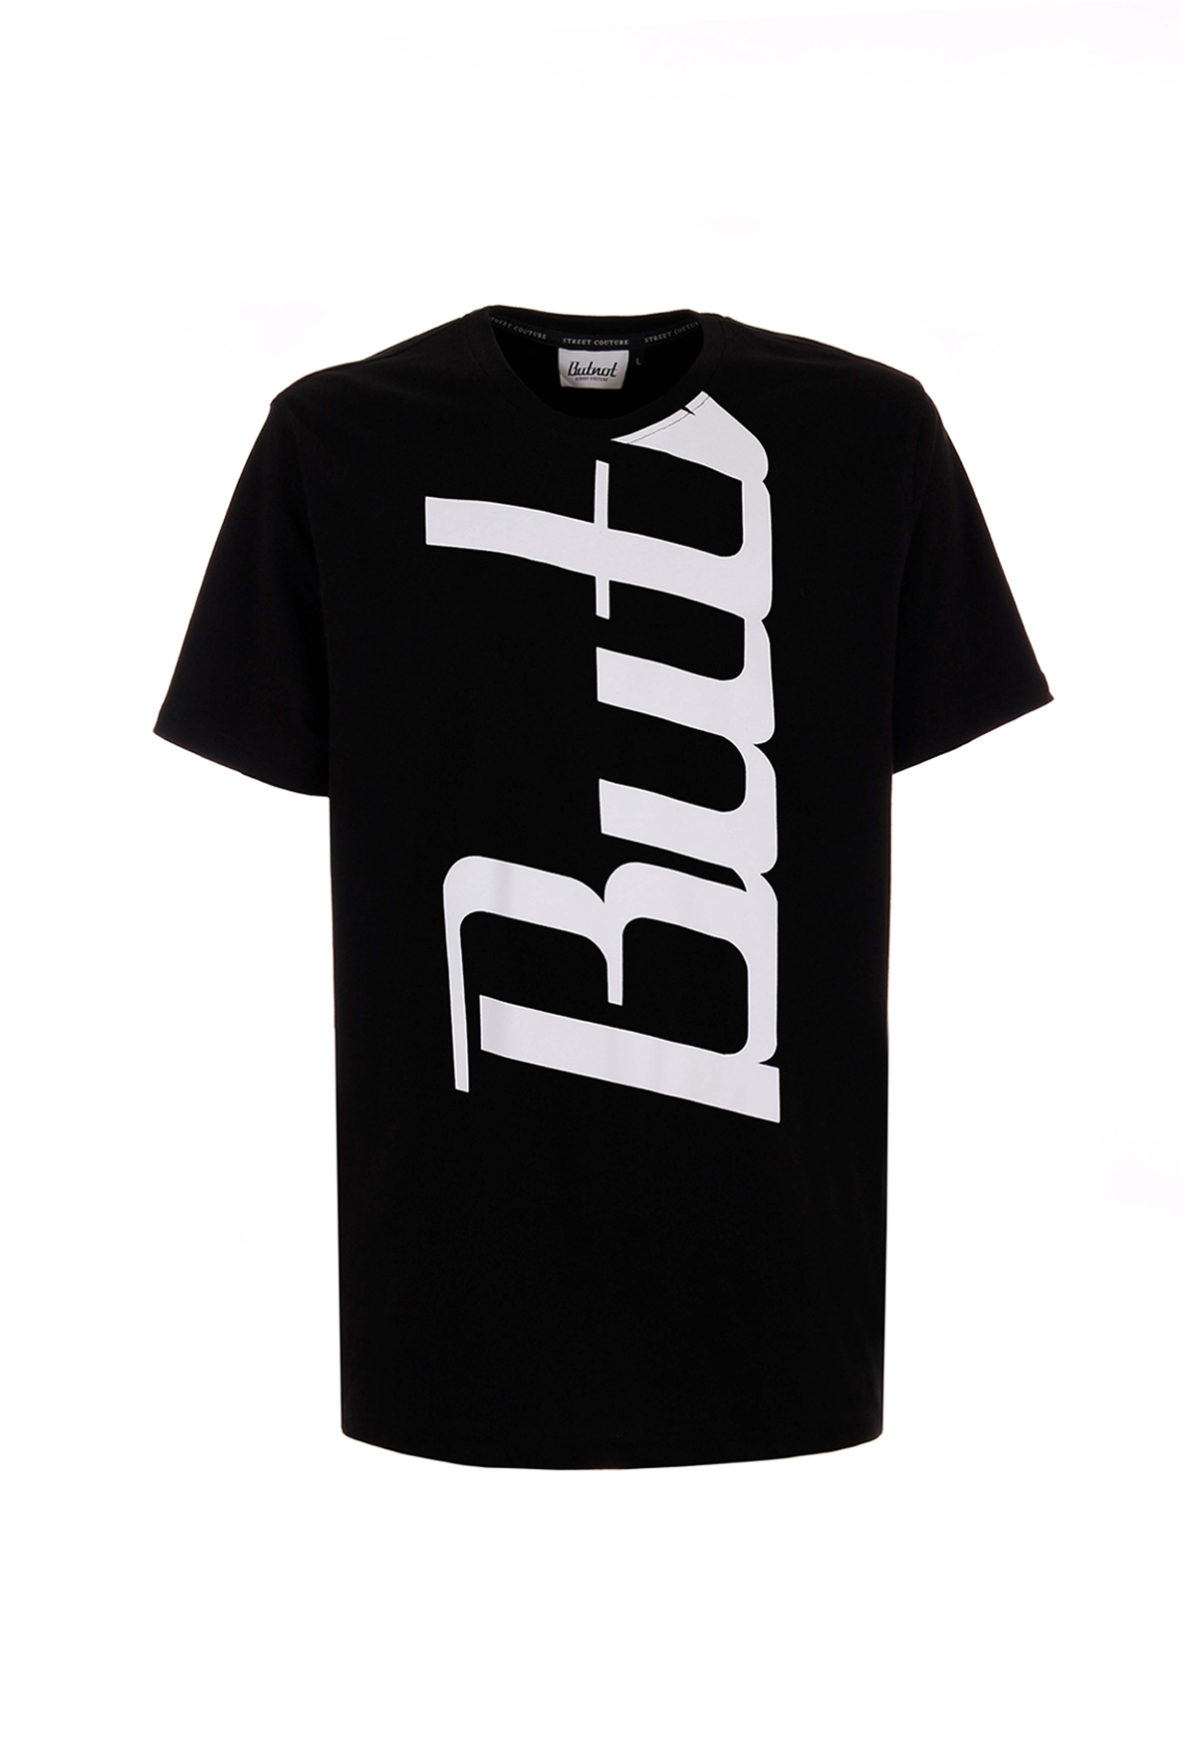 T-SHIRT BUTNOT STAMPA FRONTE RETRO